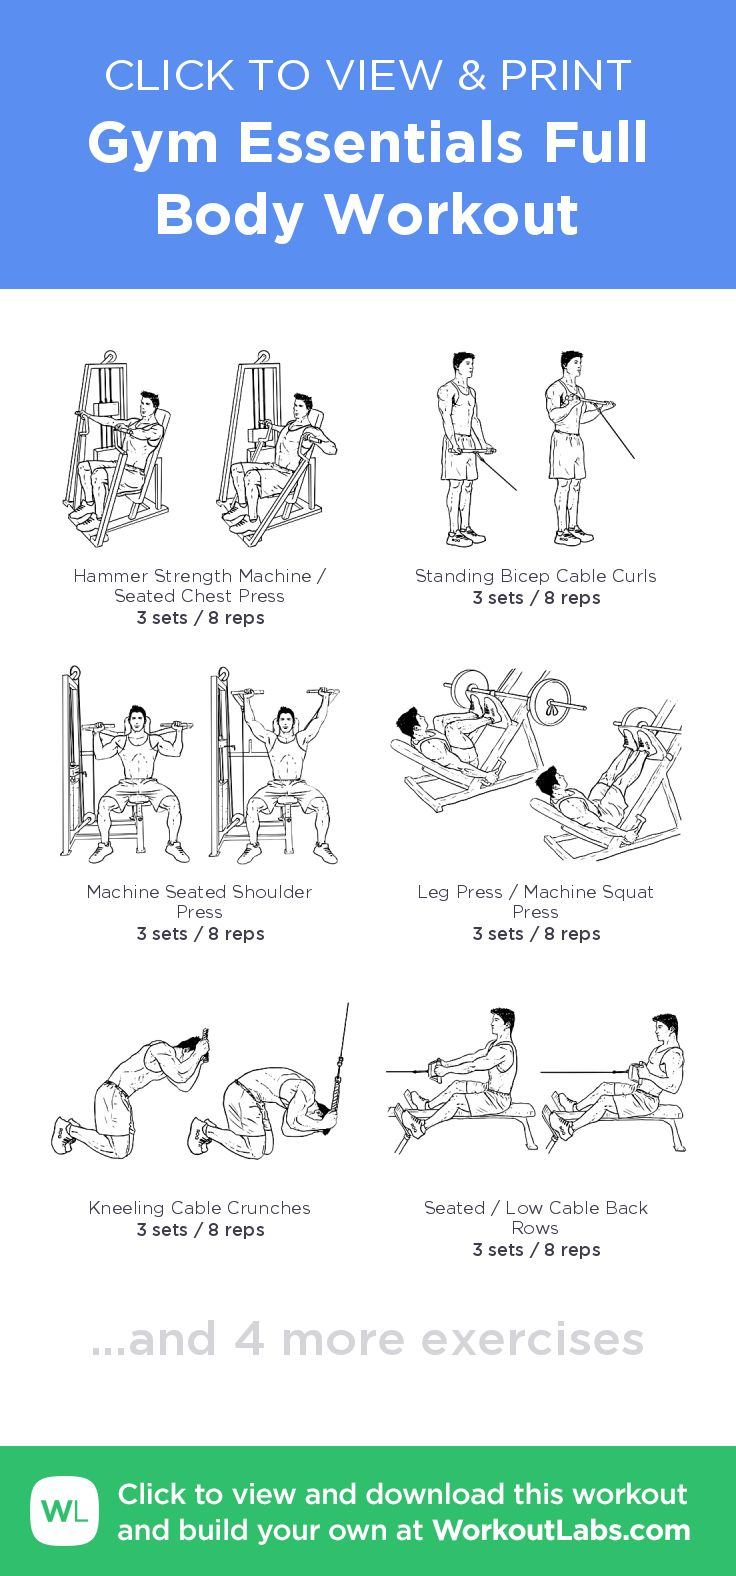 Gym Essentials Full Body Workout –click to view and print this illustrated exercise plan created with #WorkoutLabsFit